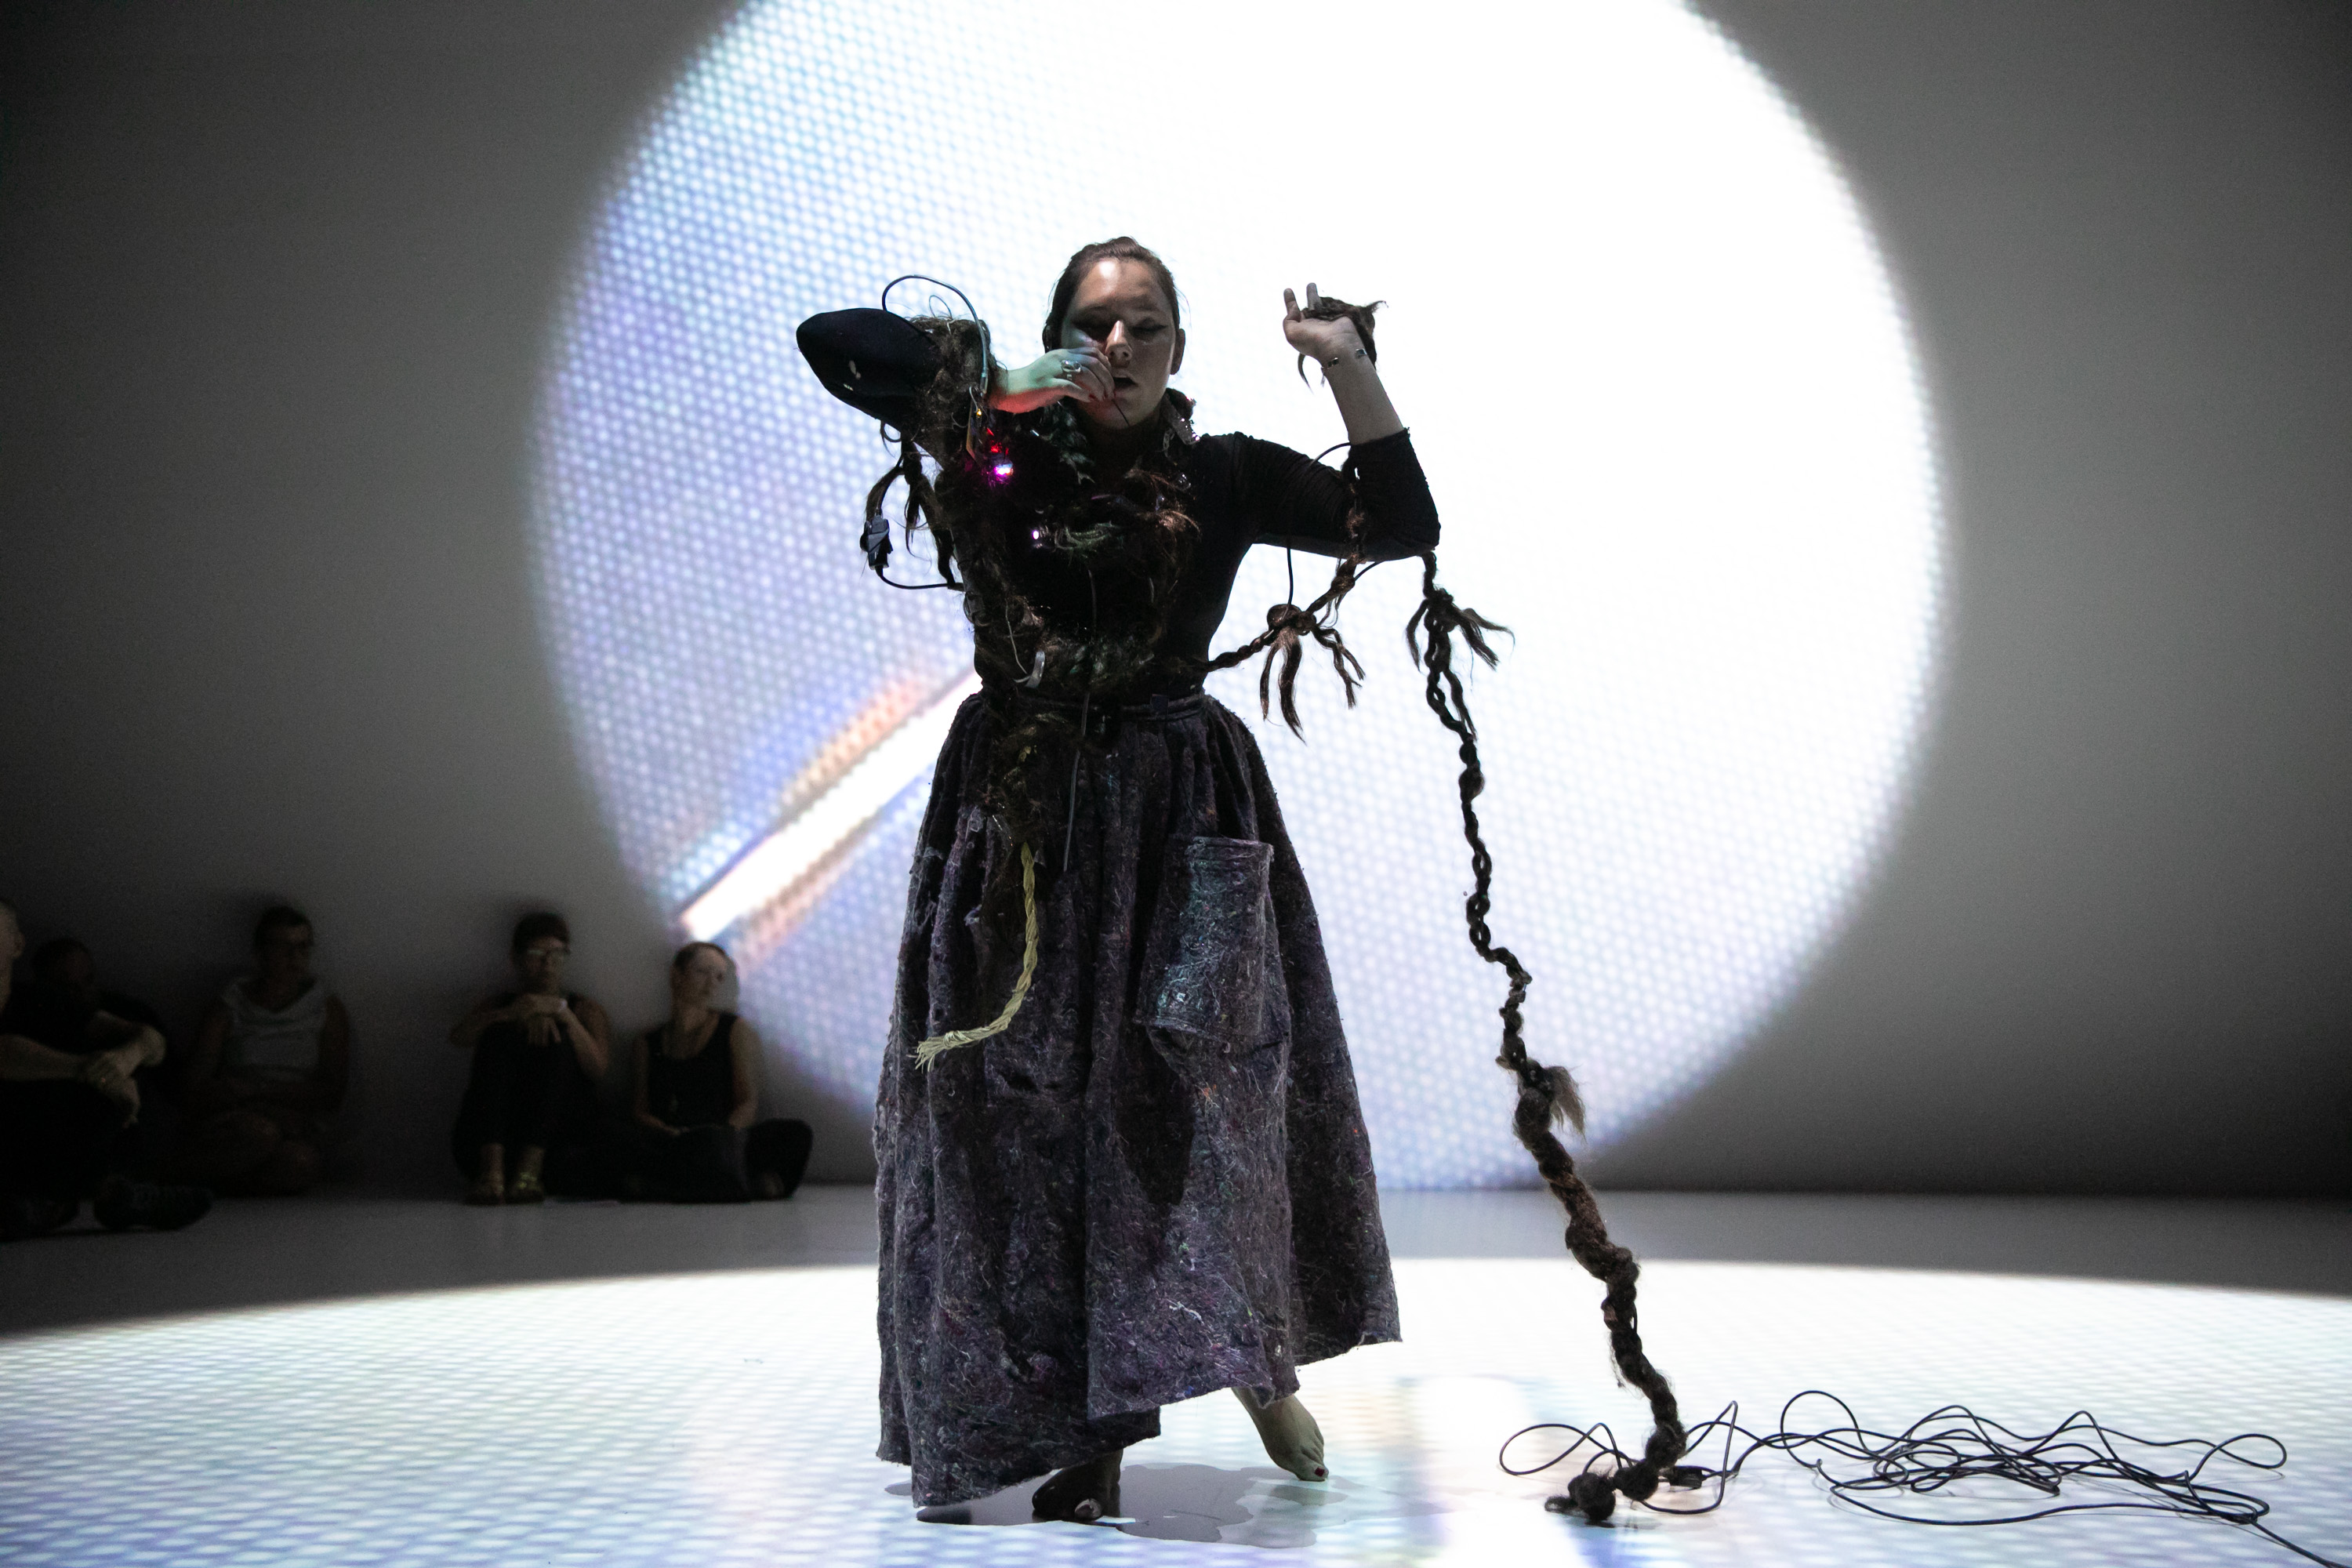 Kite performing in a long dark dress standing on a white-lit circle in a darkened space; a long knotted braid woven with wires extends from her head to the floor